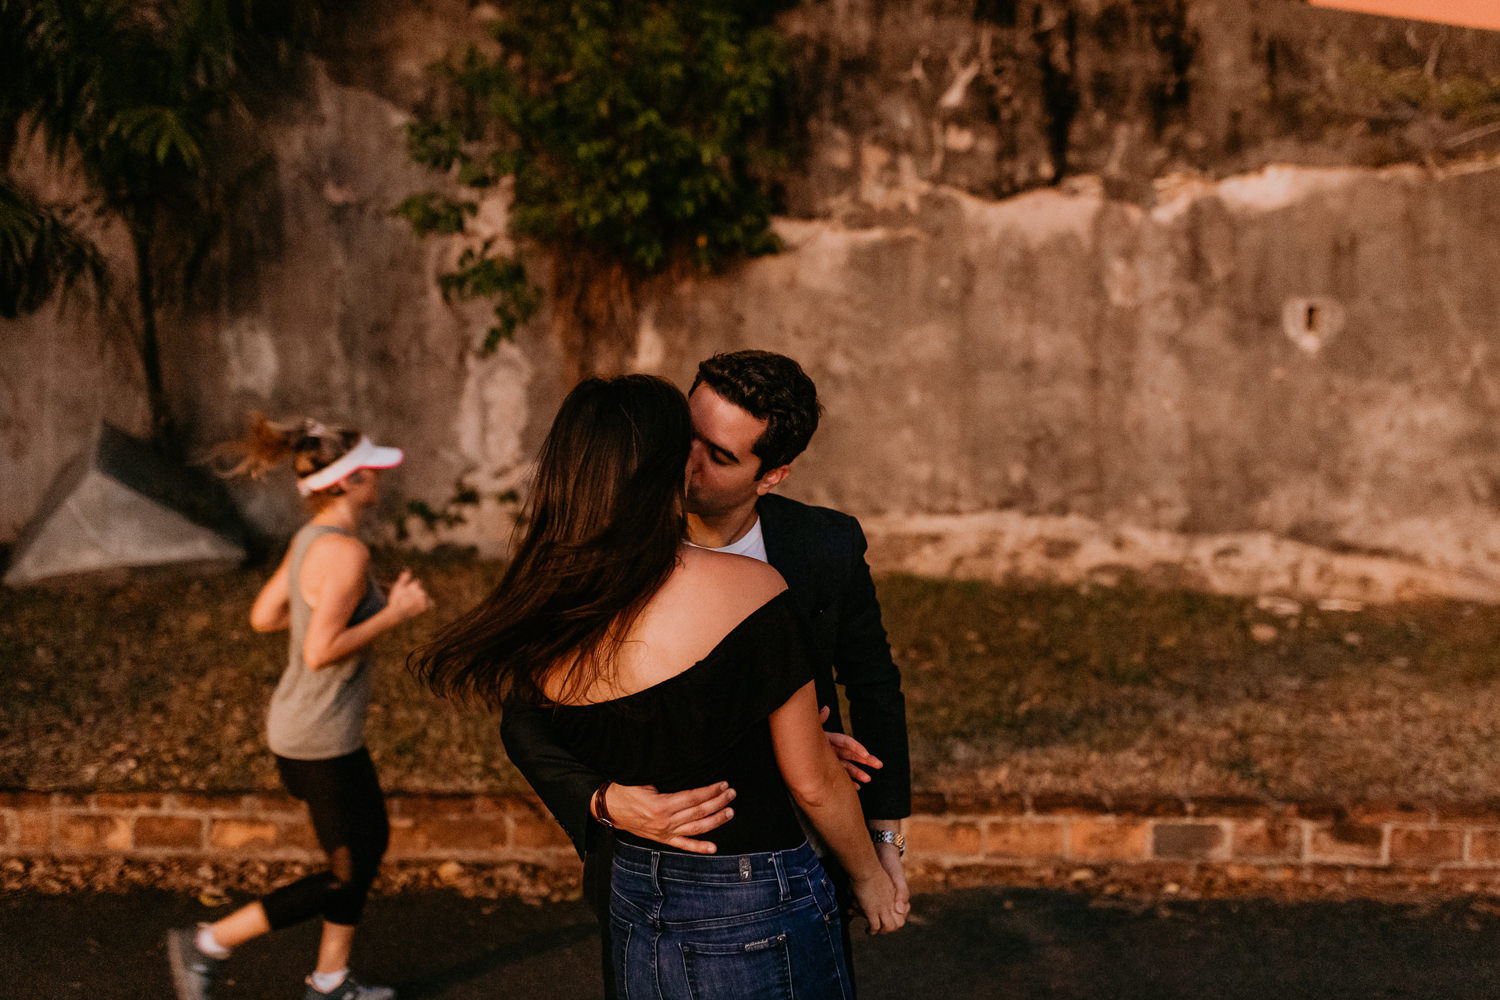 couple passionately kissing each other he has one arm around her waist